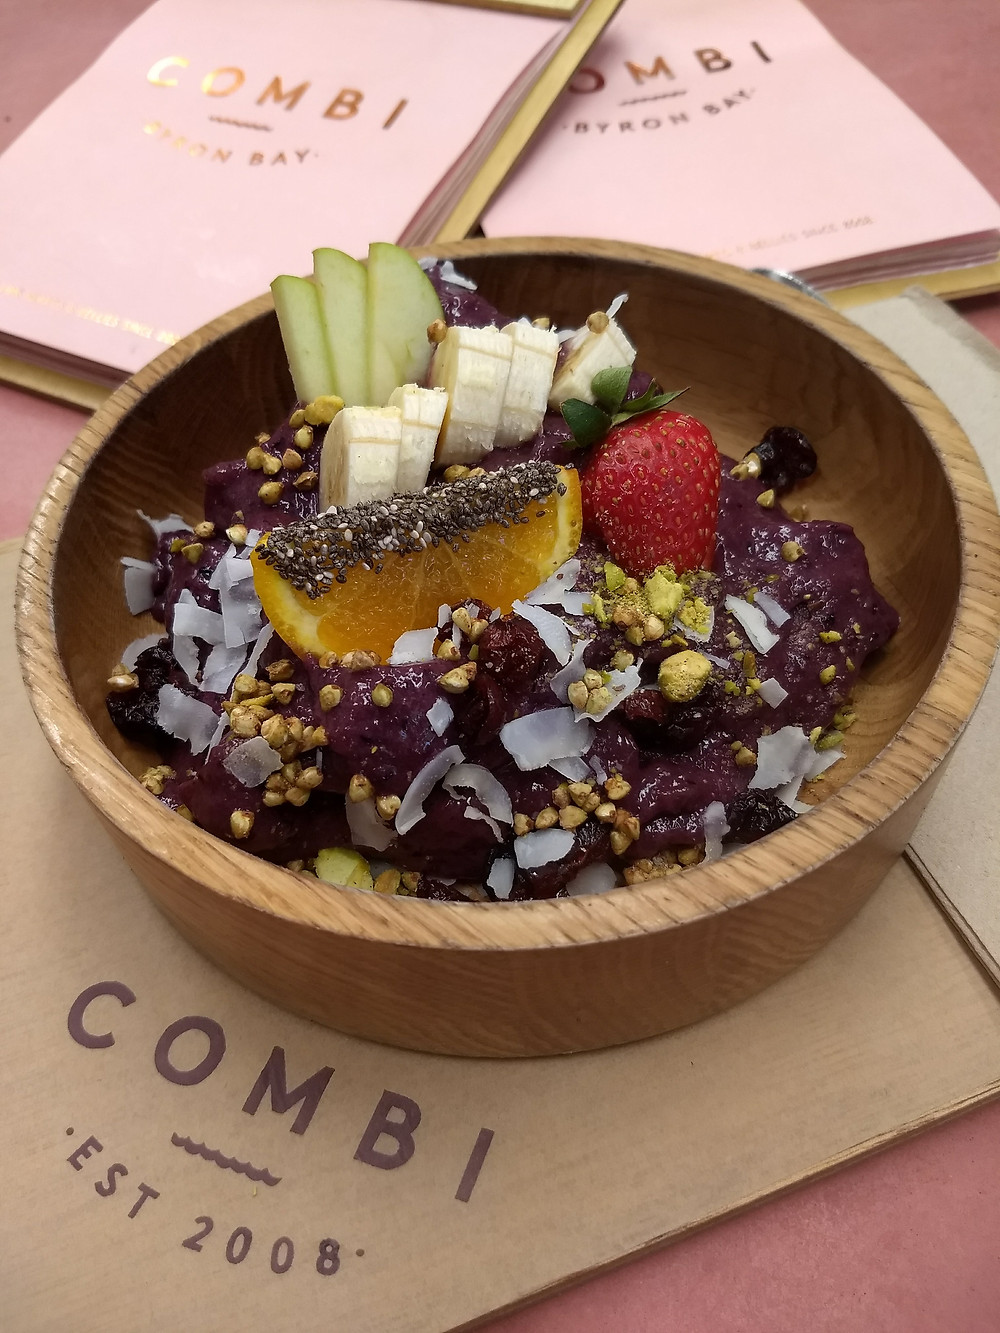 Acai bowl at Combi Byron Bay.